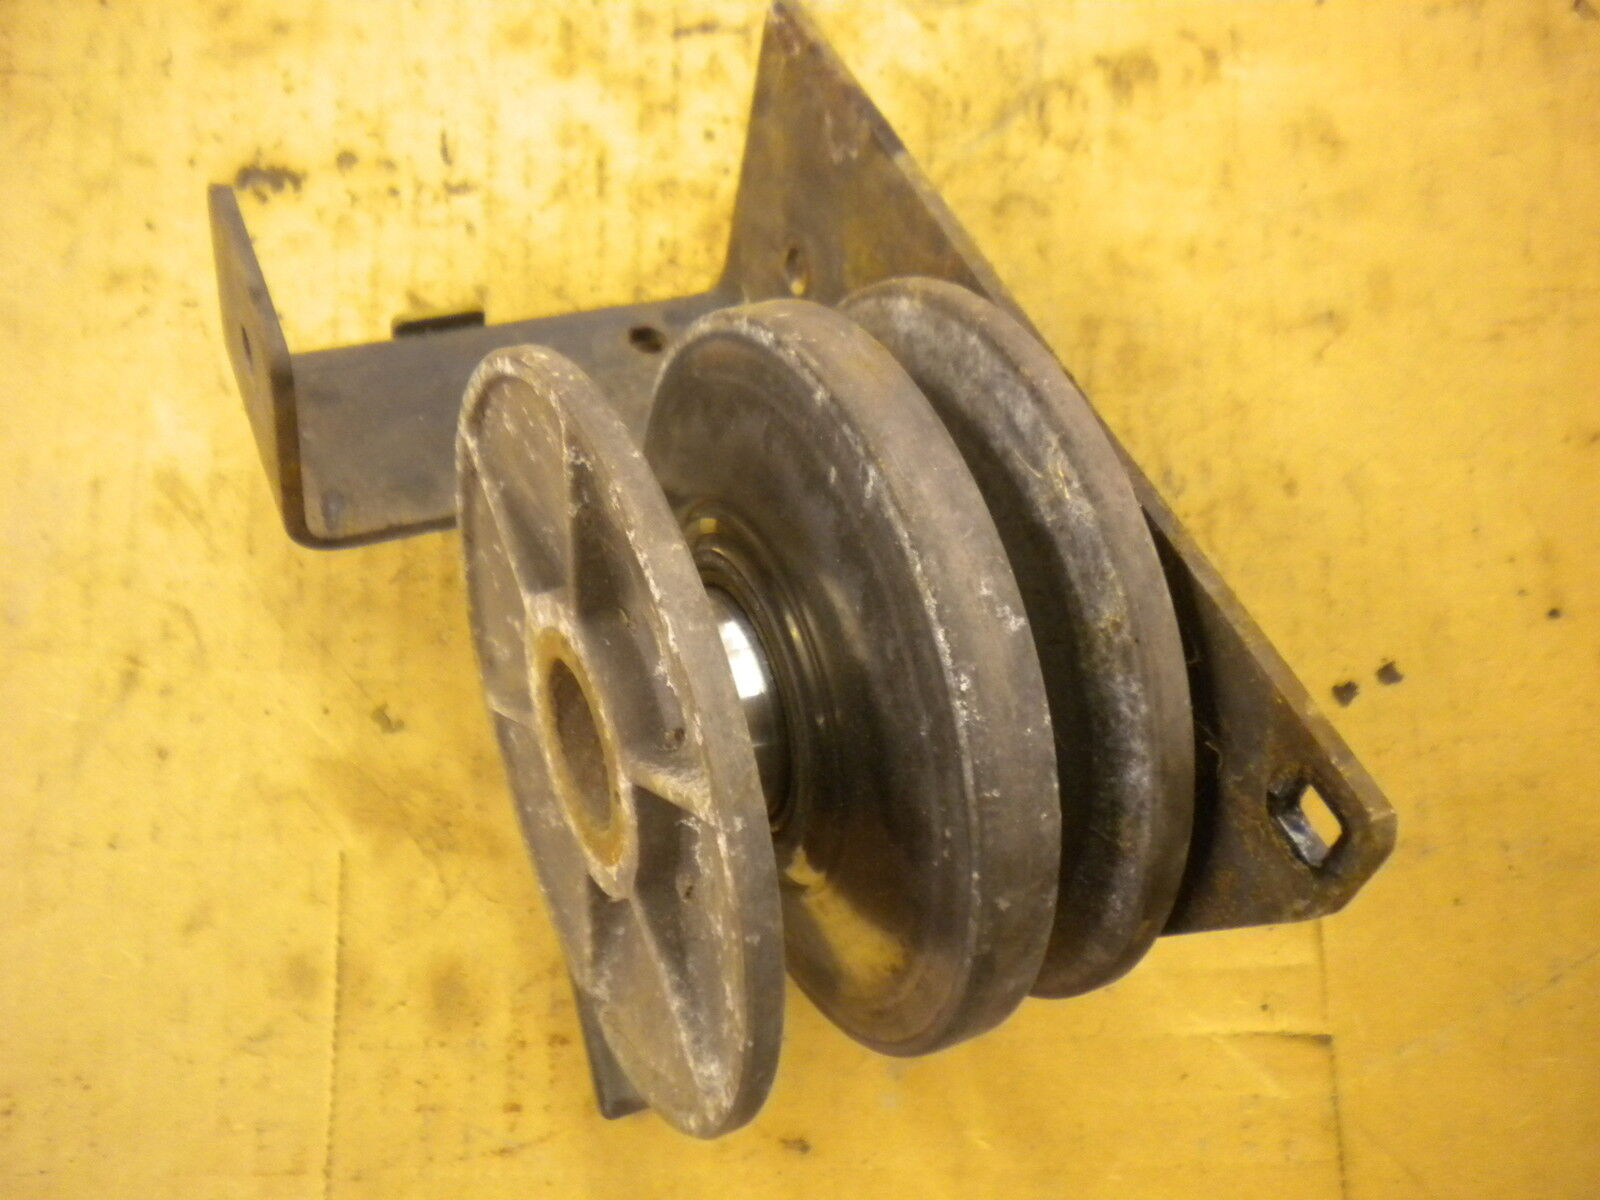 1987 John Deere SX95 mower variable speed drive pulley